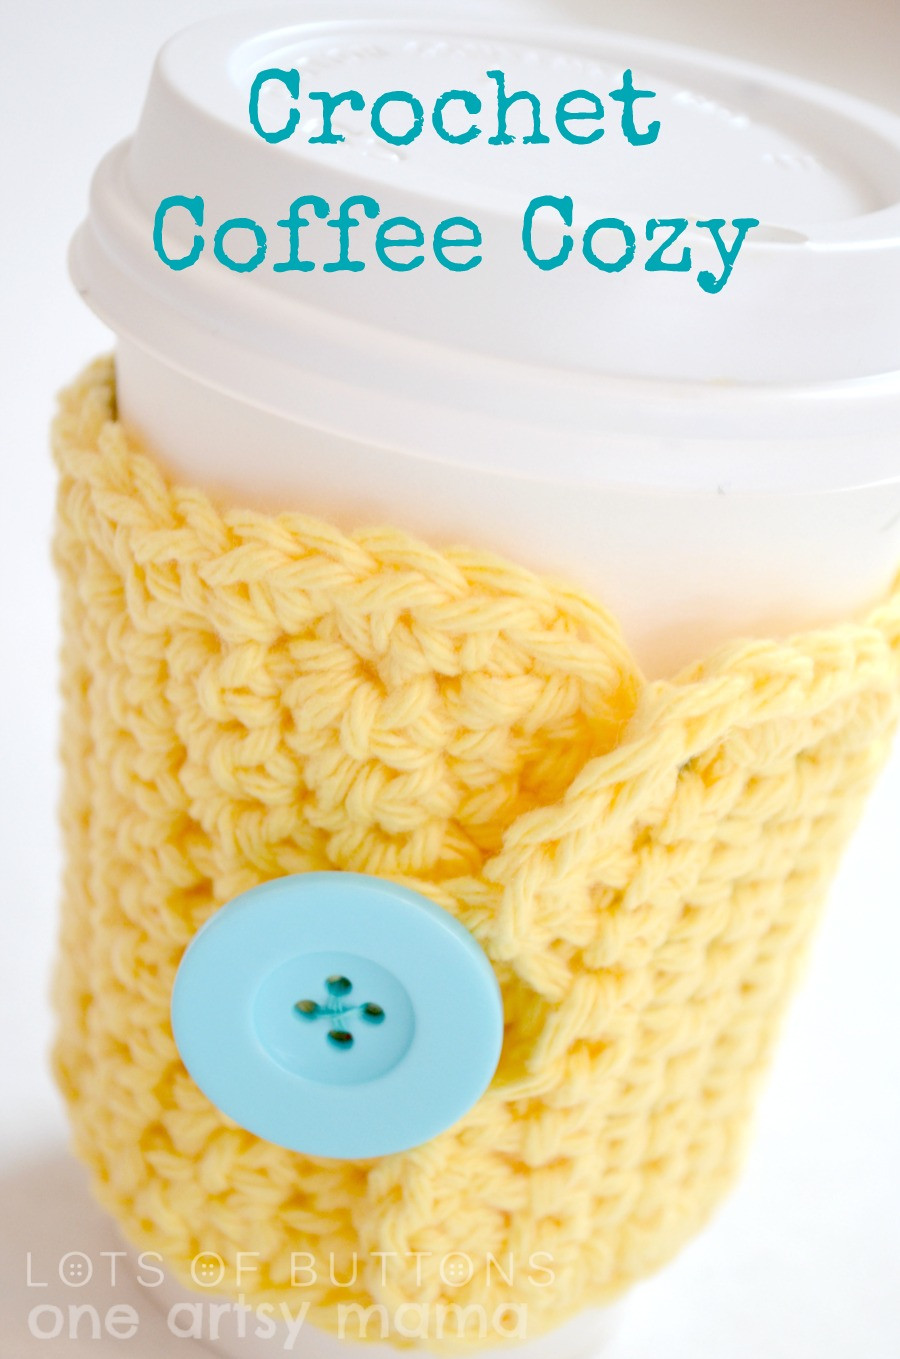 Crochet Coffee Cup Cozy Lovely Crochet Coffee Cozy Amy Latta Creations Of Crochet Coffee Cup Cozy Awesome Free Mug Cozy Crochet Patterns with Worsted Weight Yarn